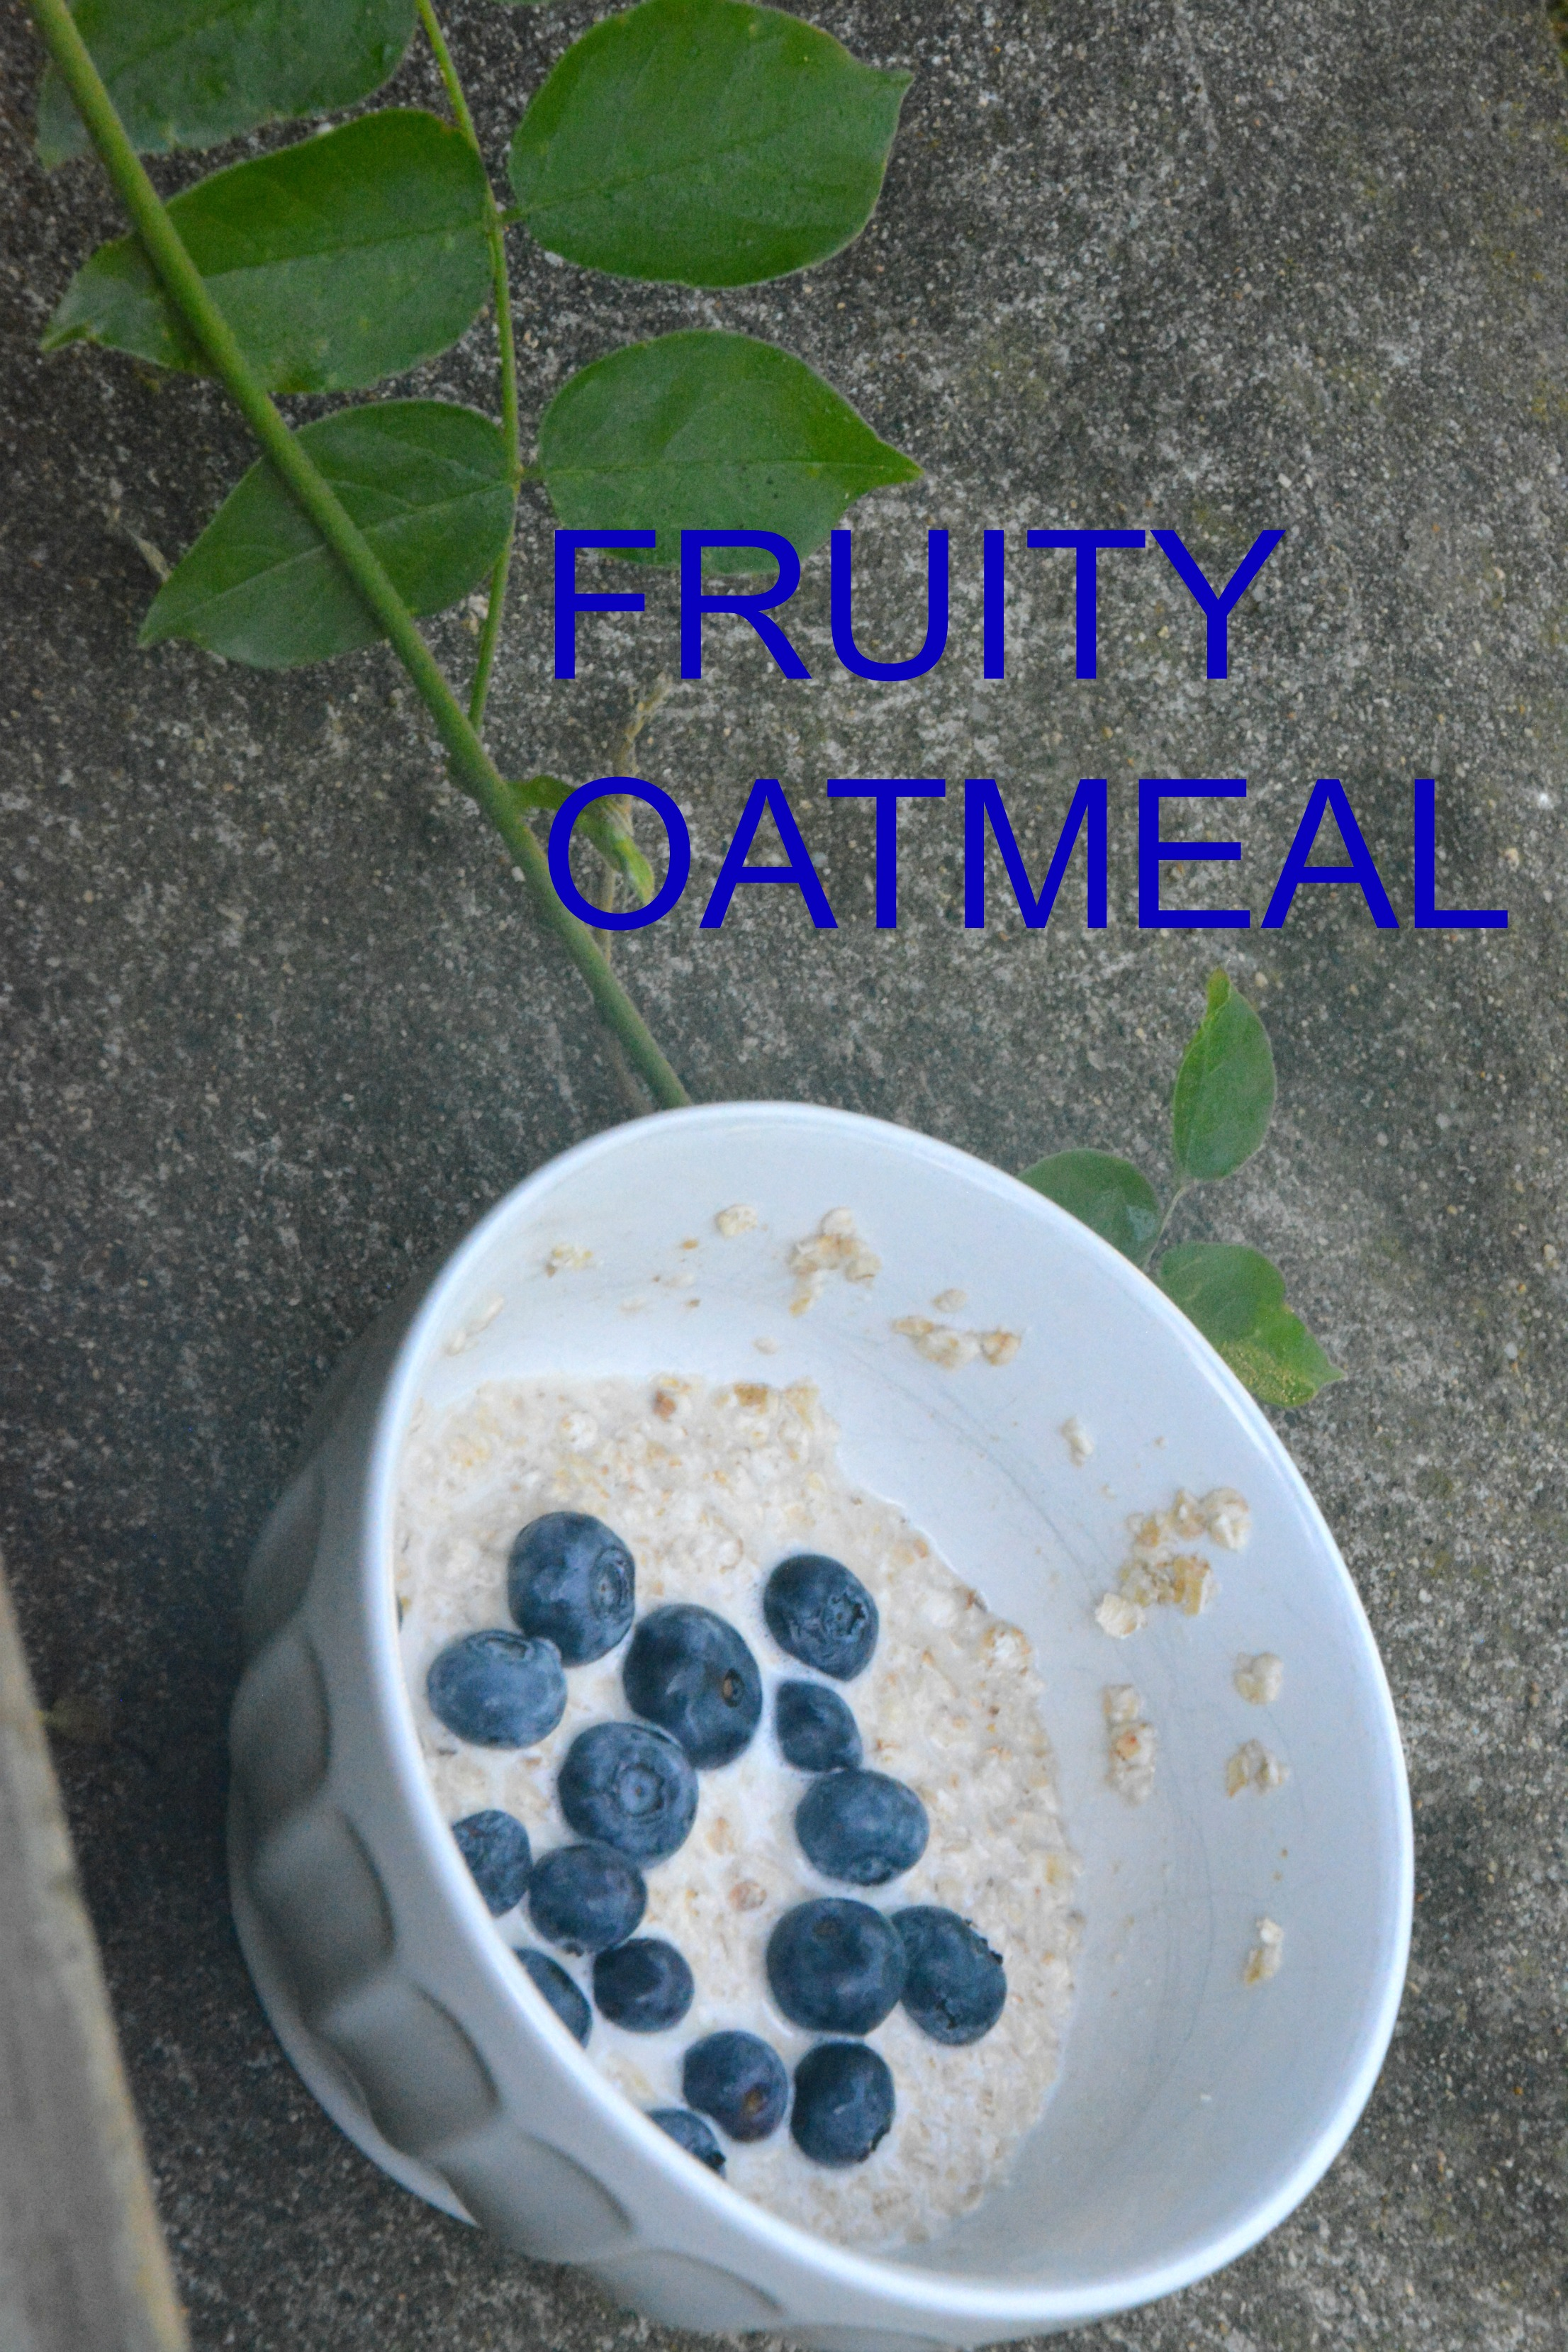 Fruity Oatmeal